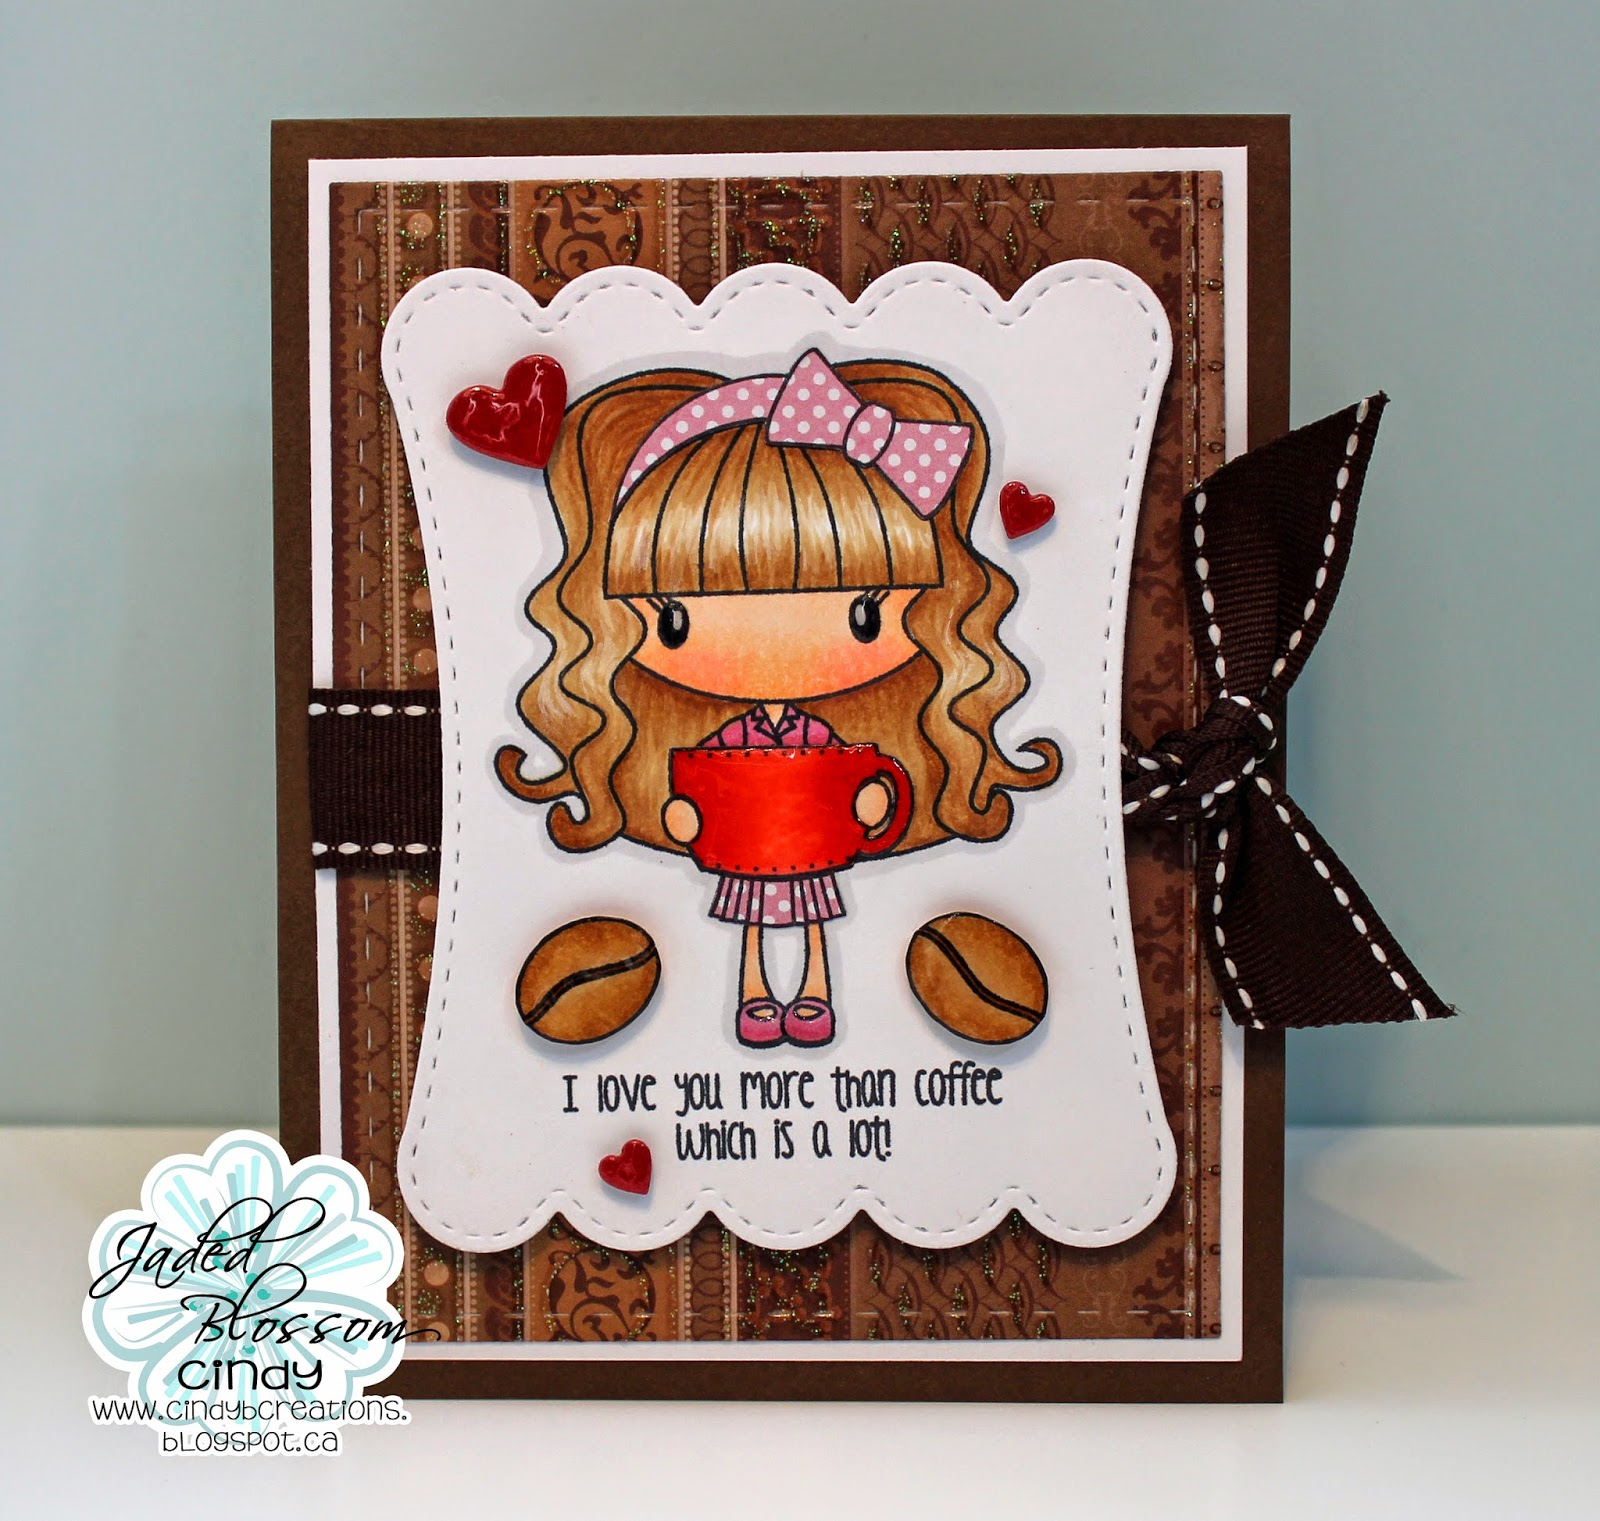 I Love You More Than Coffee: Cindy's Scraptastic Designs: I Love You More Than Coffee